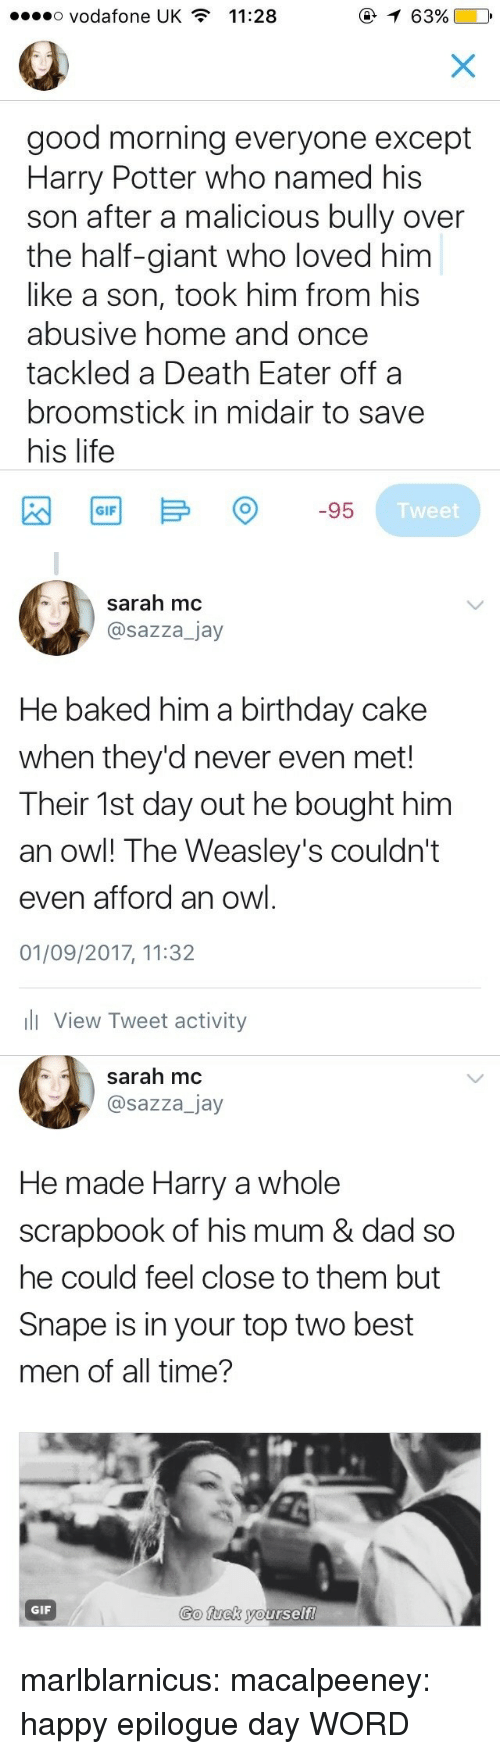 Baked, Birthday, and Broomstick: o Vodafone UK  11:28  0  good morning everyone except  Harry Potter who named his  son after a malicious bully over  the half-giant who loved him  like a son, took him from his  abusive home and once  tackled a Death Eater offa  broomstick in midair to save  his life  Tweet   sarah mc  @sazza_jay  He baked him a birthday cake  when they'd never even met!  Their 1st day out he bought him  an owl! The Weasley's couldn't  even afford an owl  01/09/2017, 11:32  l View Tweet activity   sarah mc  @sazza_jay  He made Harry a whole  scrapbook of his mum & dad so  he could feel close to them but  Snape is in your top two best  men of all time?  Go fuck yourself  GIF marlblarnicus: macalpeeney: happy epilogue day WORD